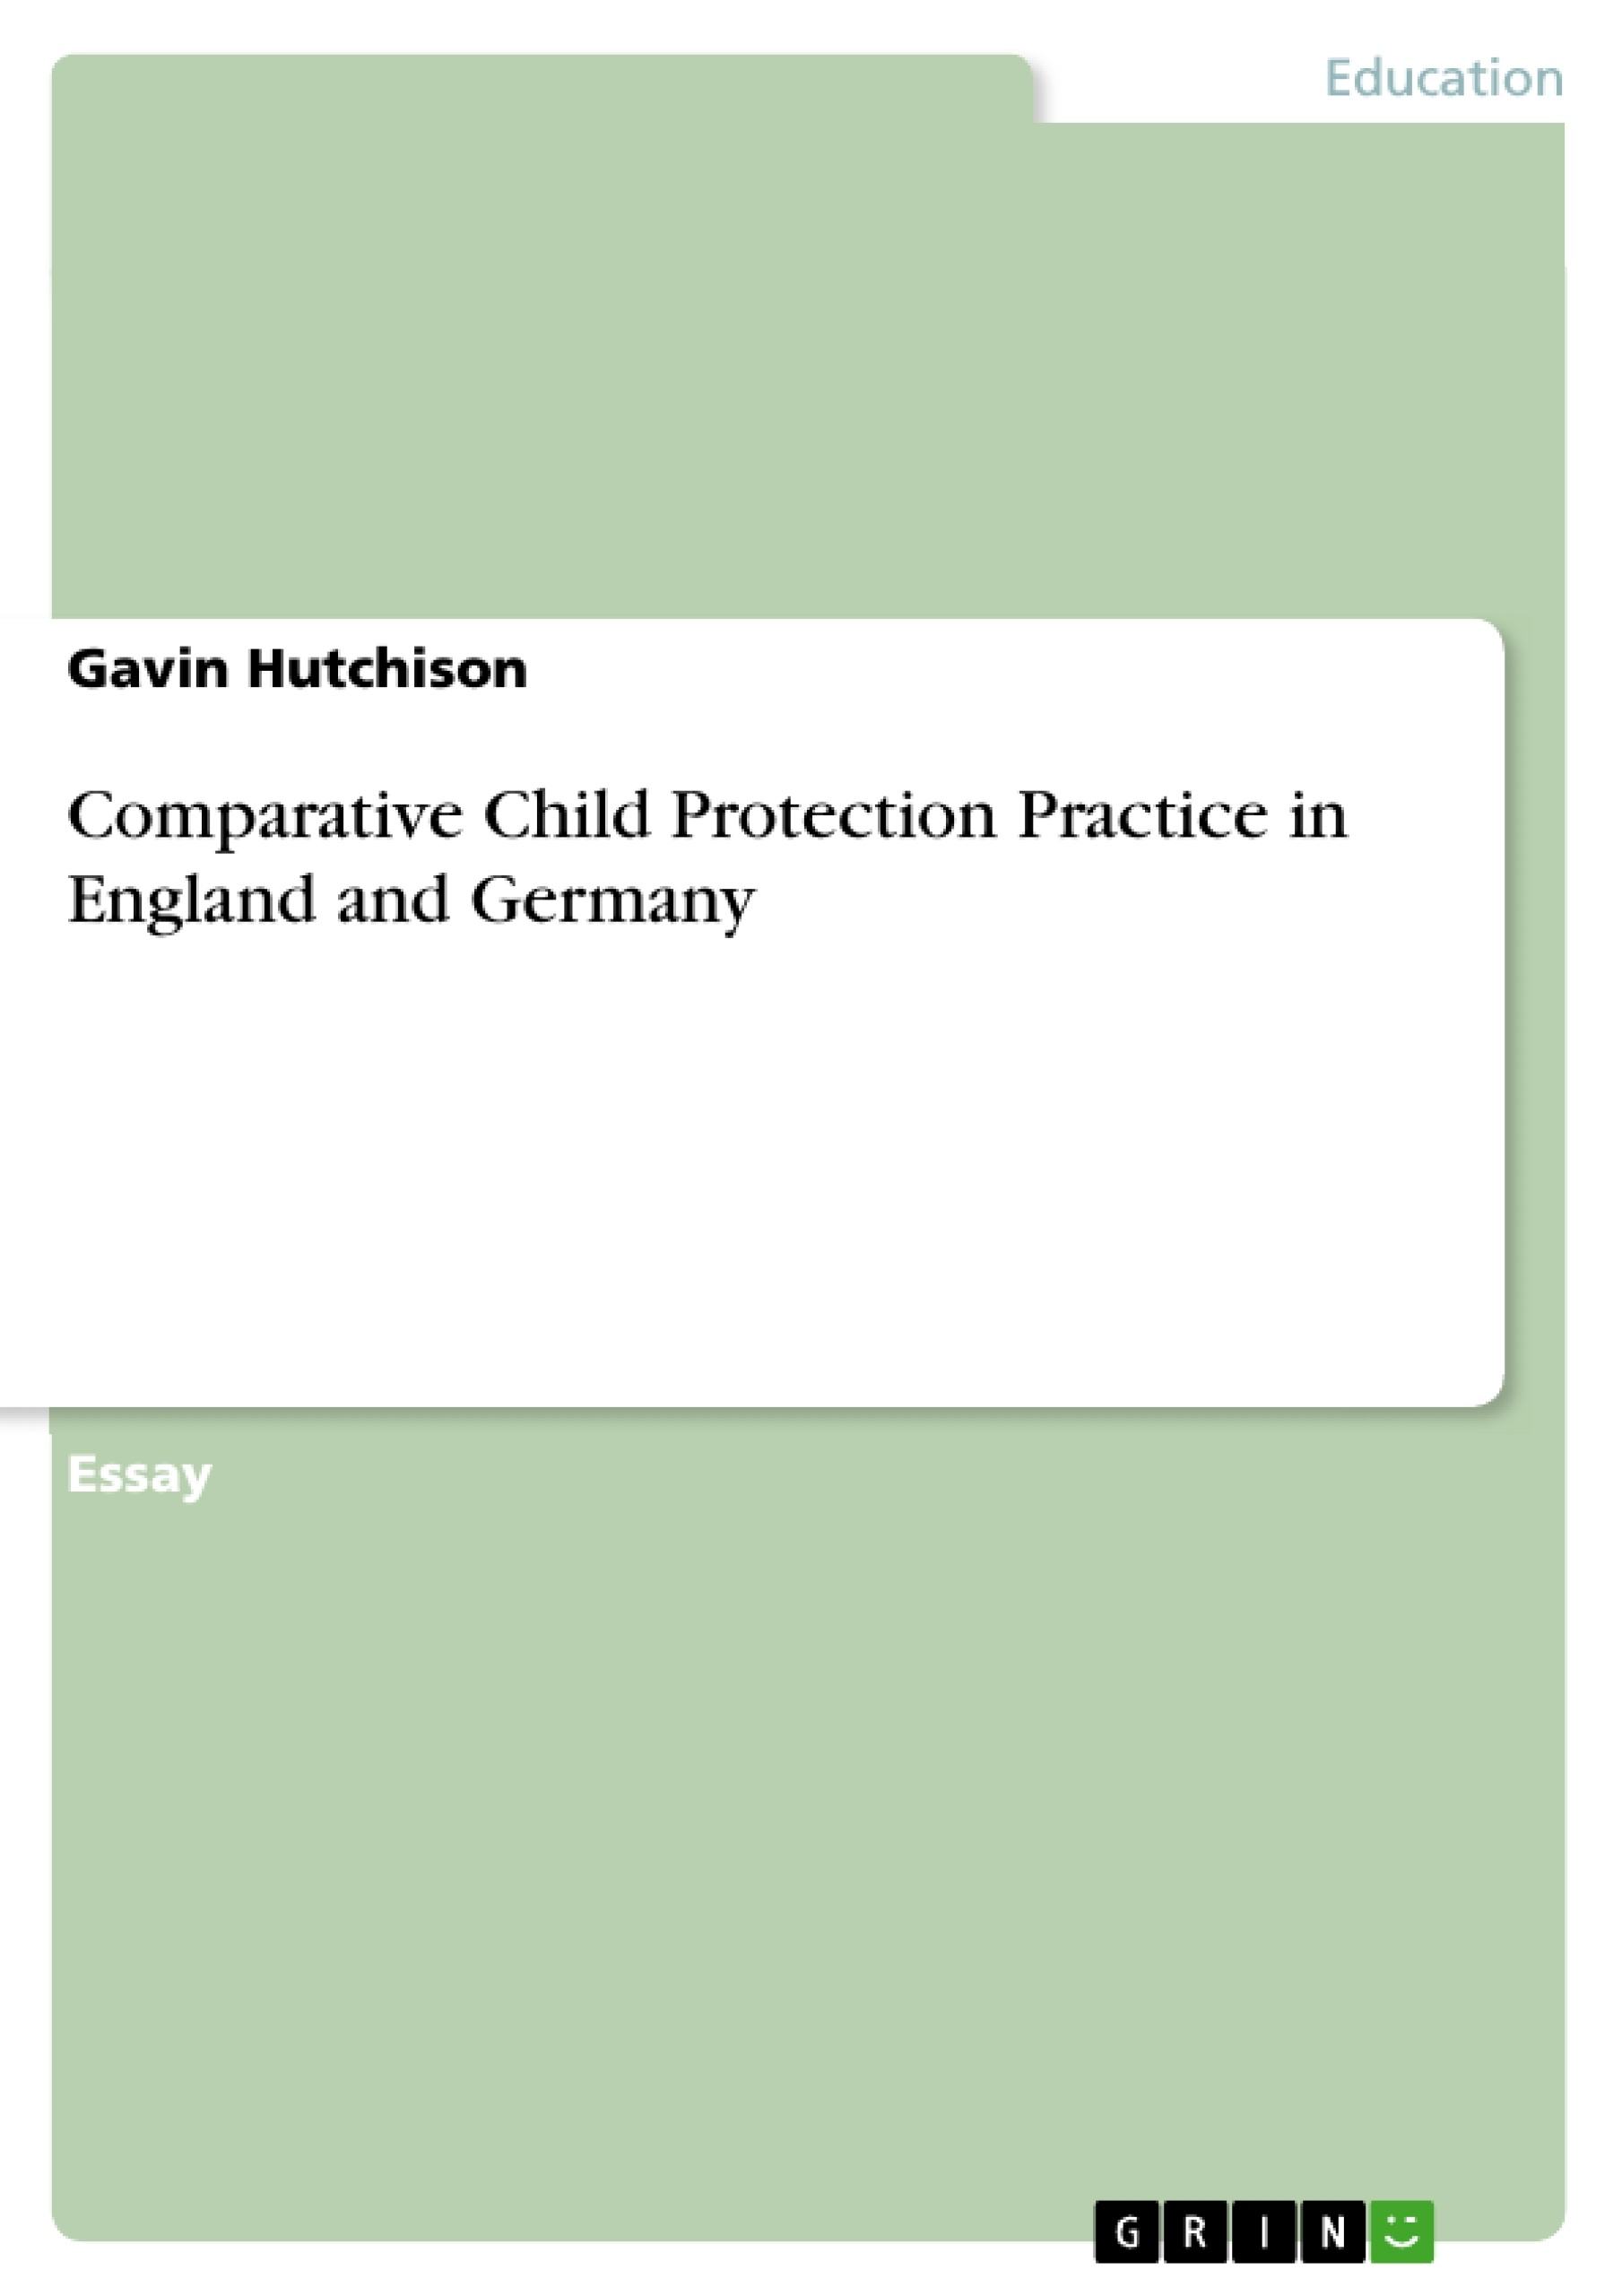 Title: Comparative Child Protection Practice in England and Germany